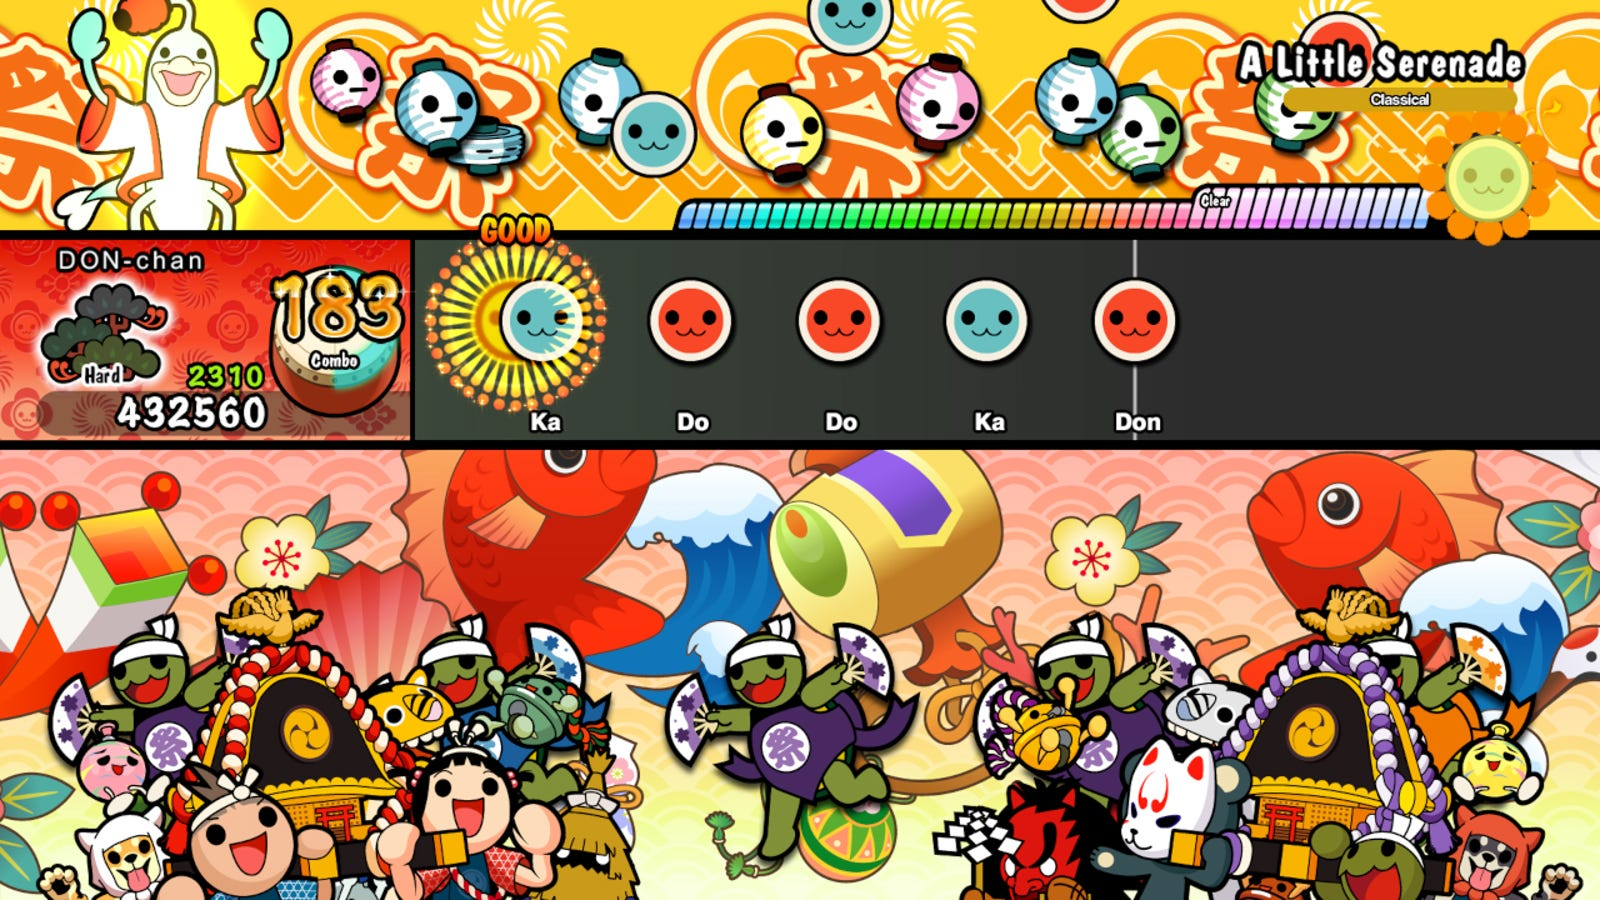 Both Versions Of Taiko no Tatsujin Are Fun In Different Ways